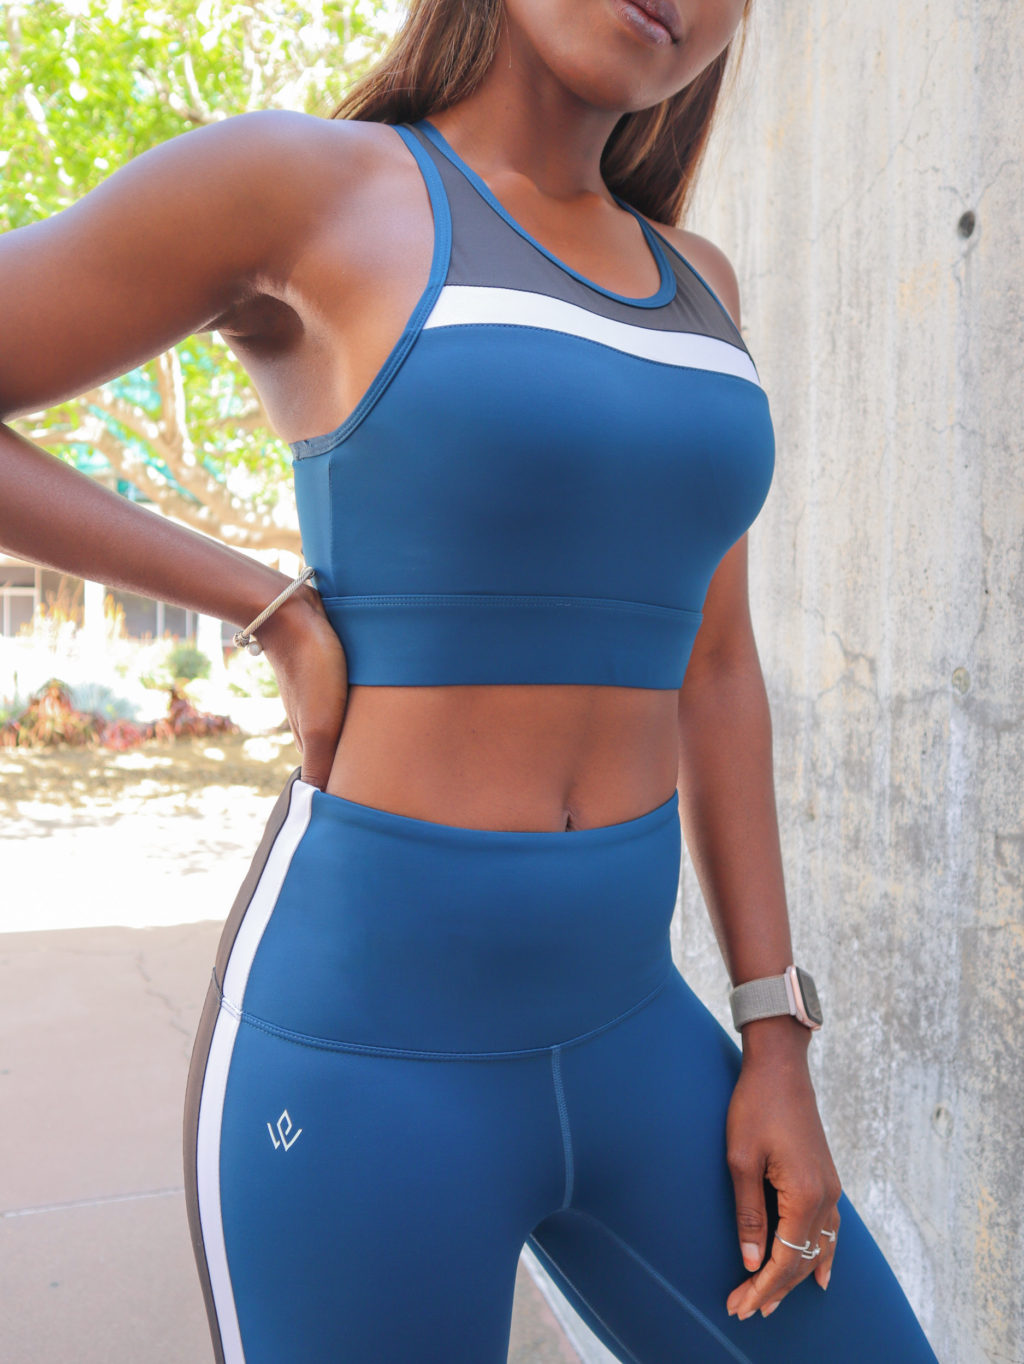 Workout empire evolve sports bra reviews